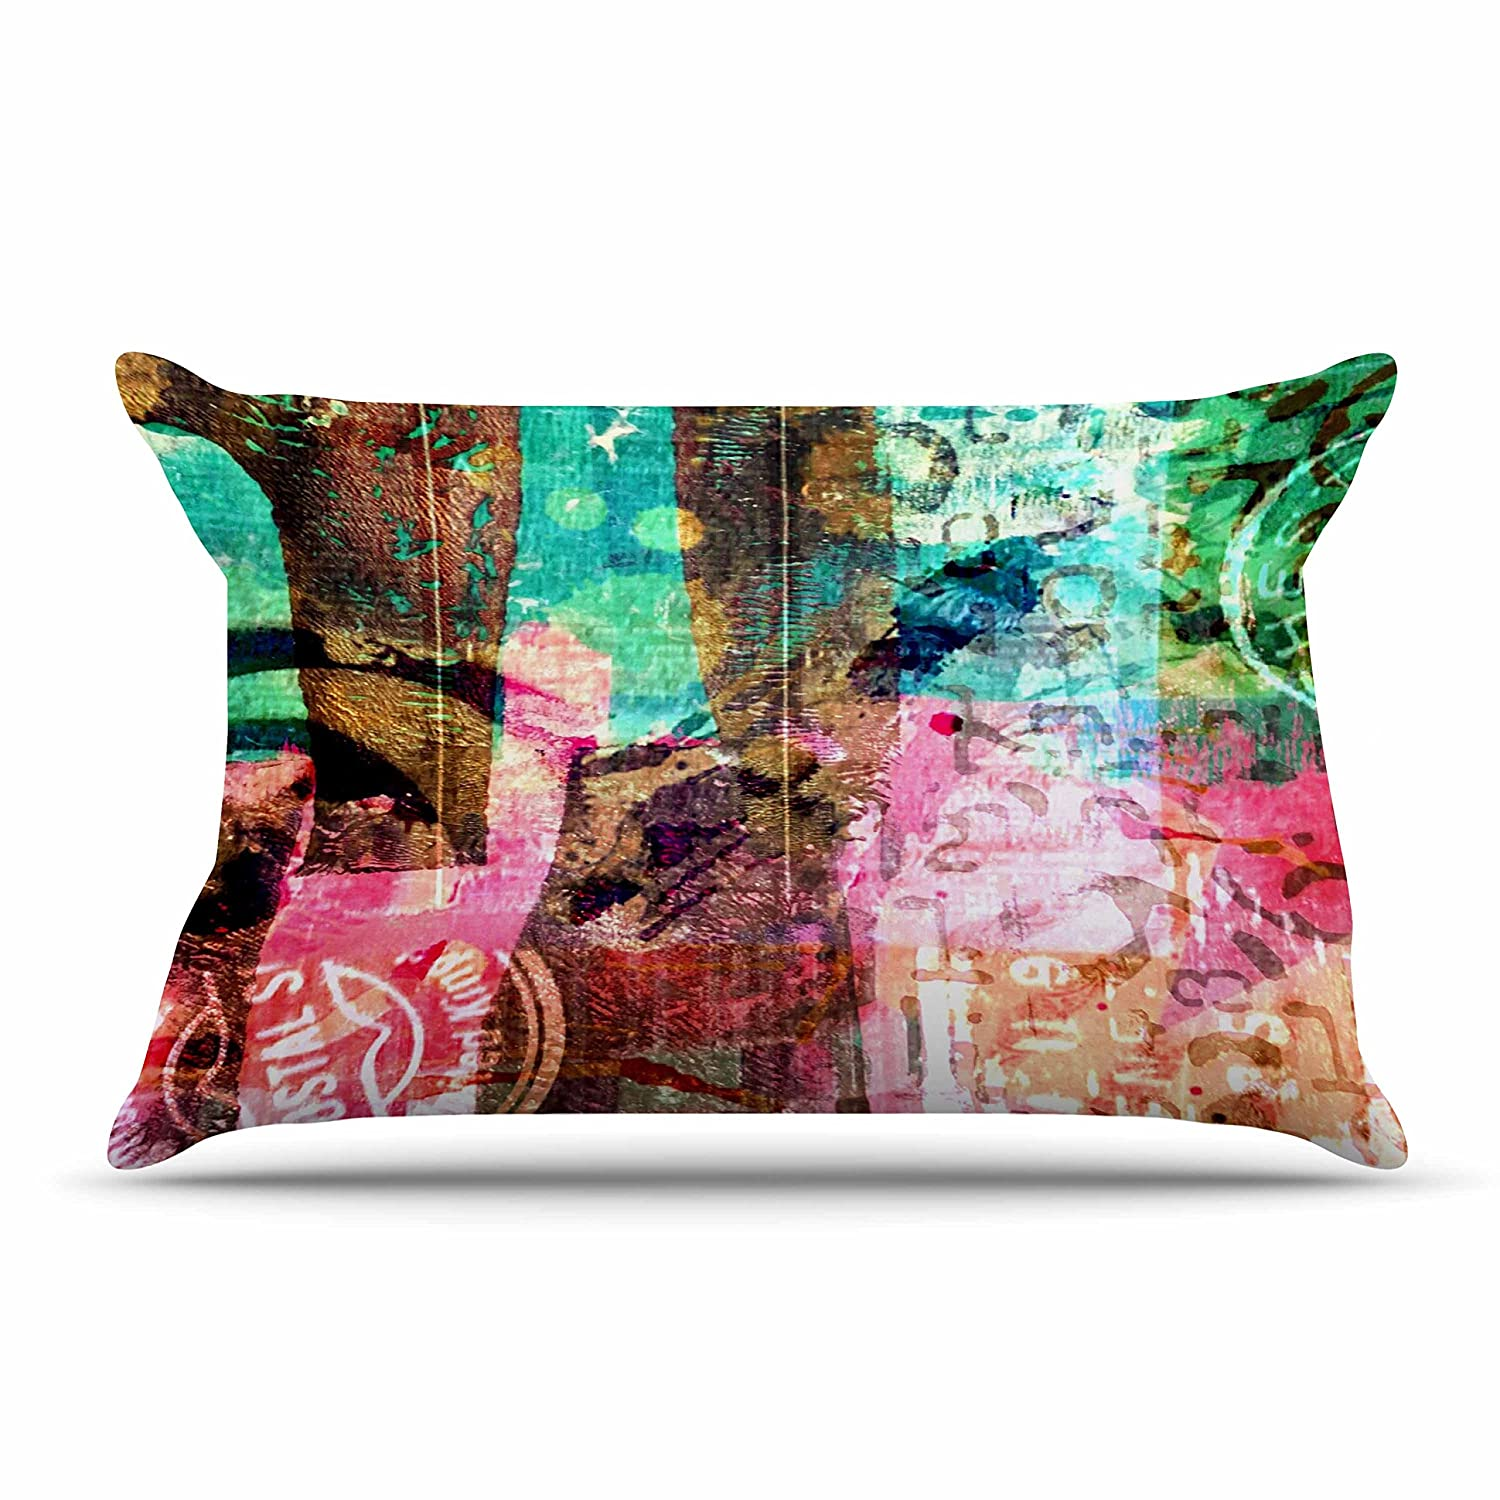 Kess InHouse Alyzen Moonshadow Green Red Abstract Multicolor Standard Pillow Case, 30 by 20-Inch, 30' X 20'